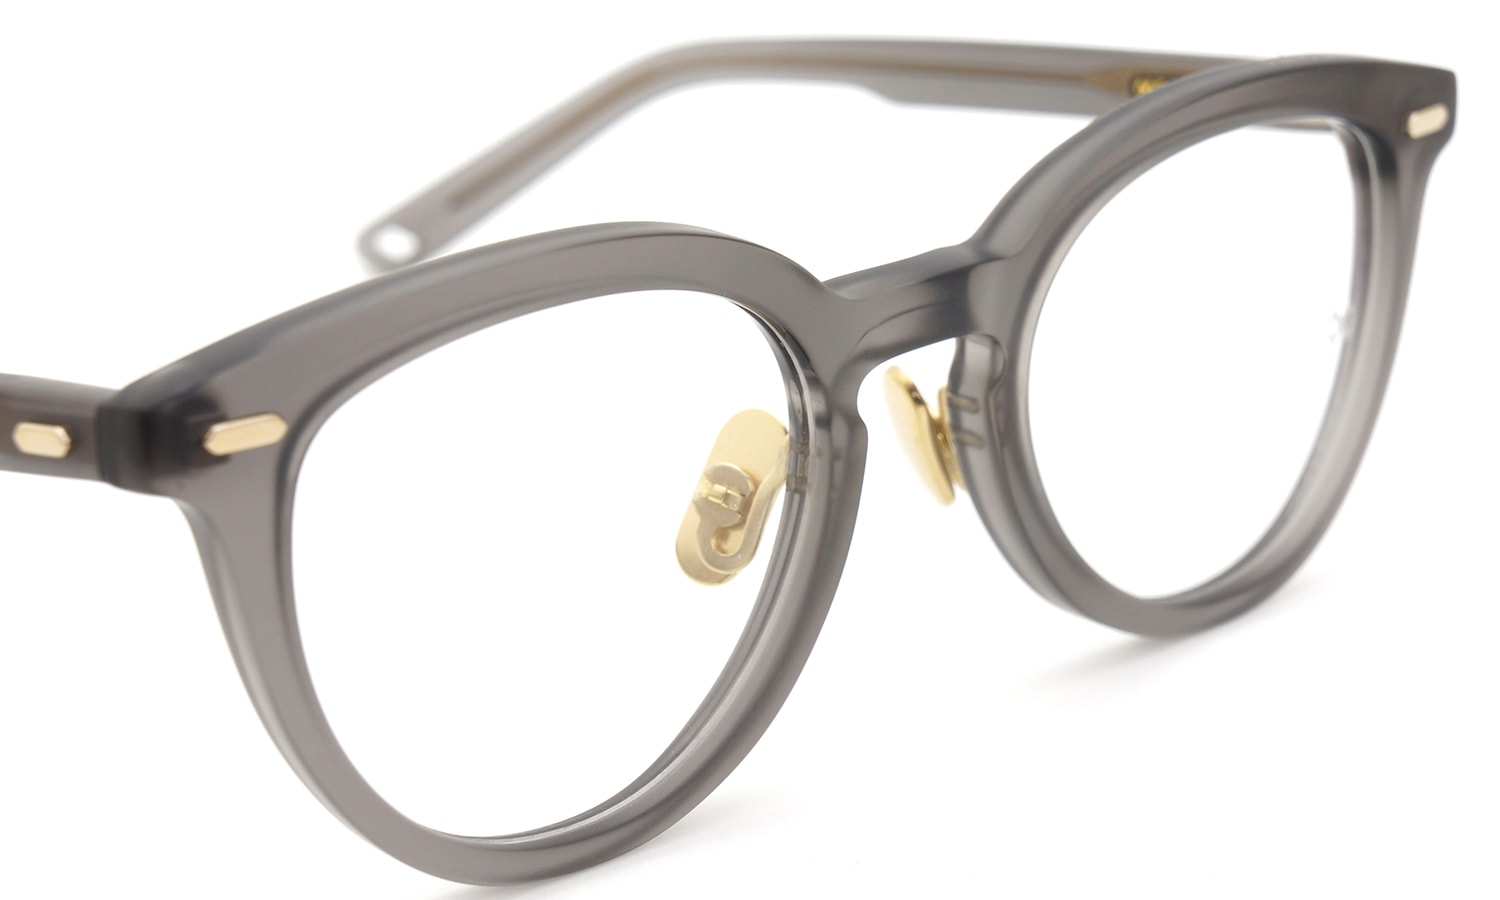 OG × OLIVER GOLDSMITH Re:PELOTA 48 リ:ペロタ 6